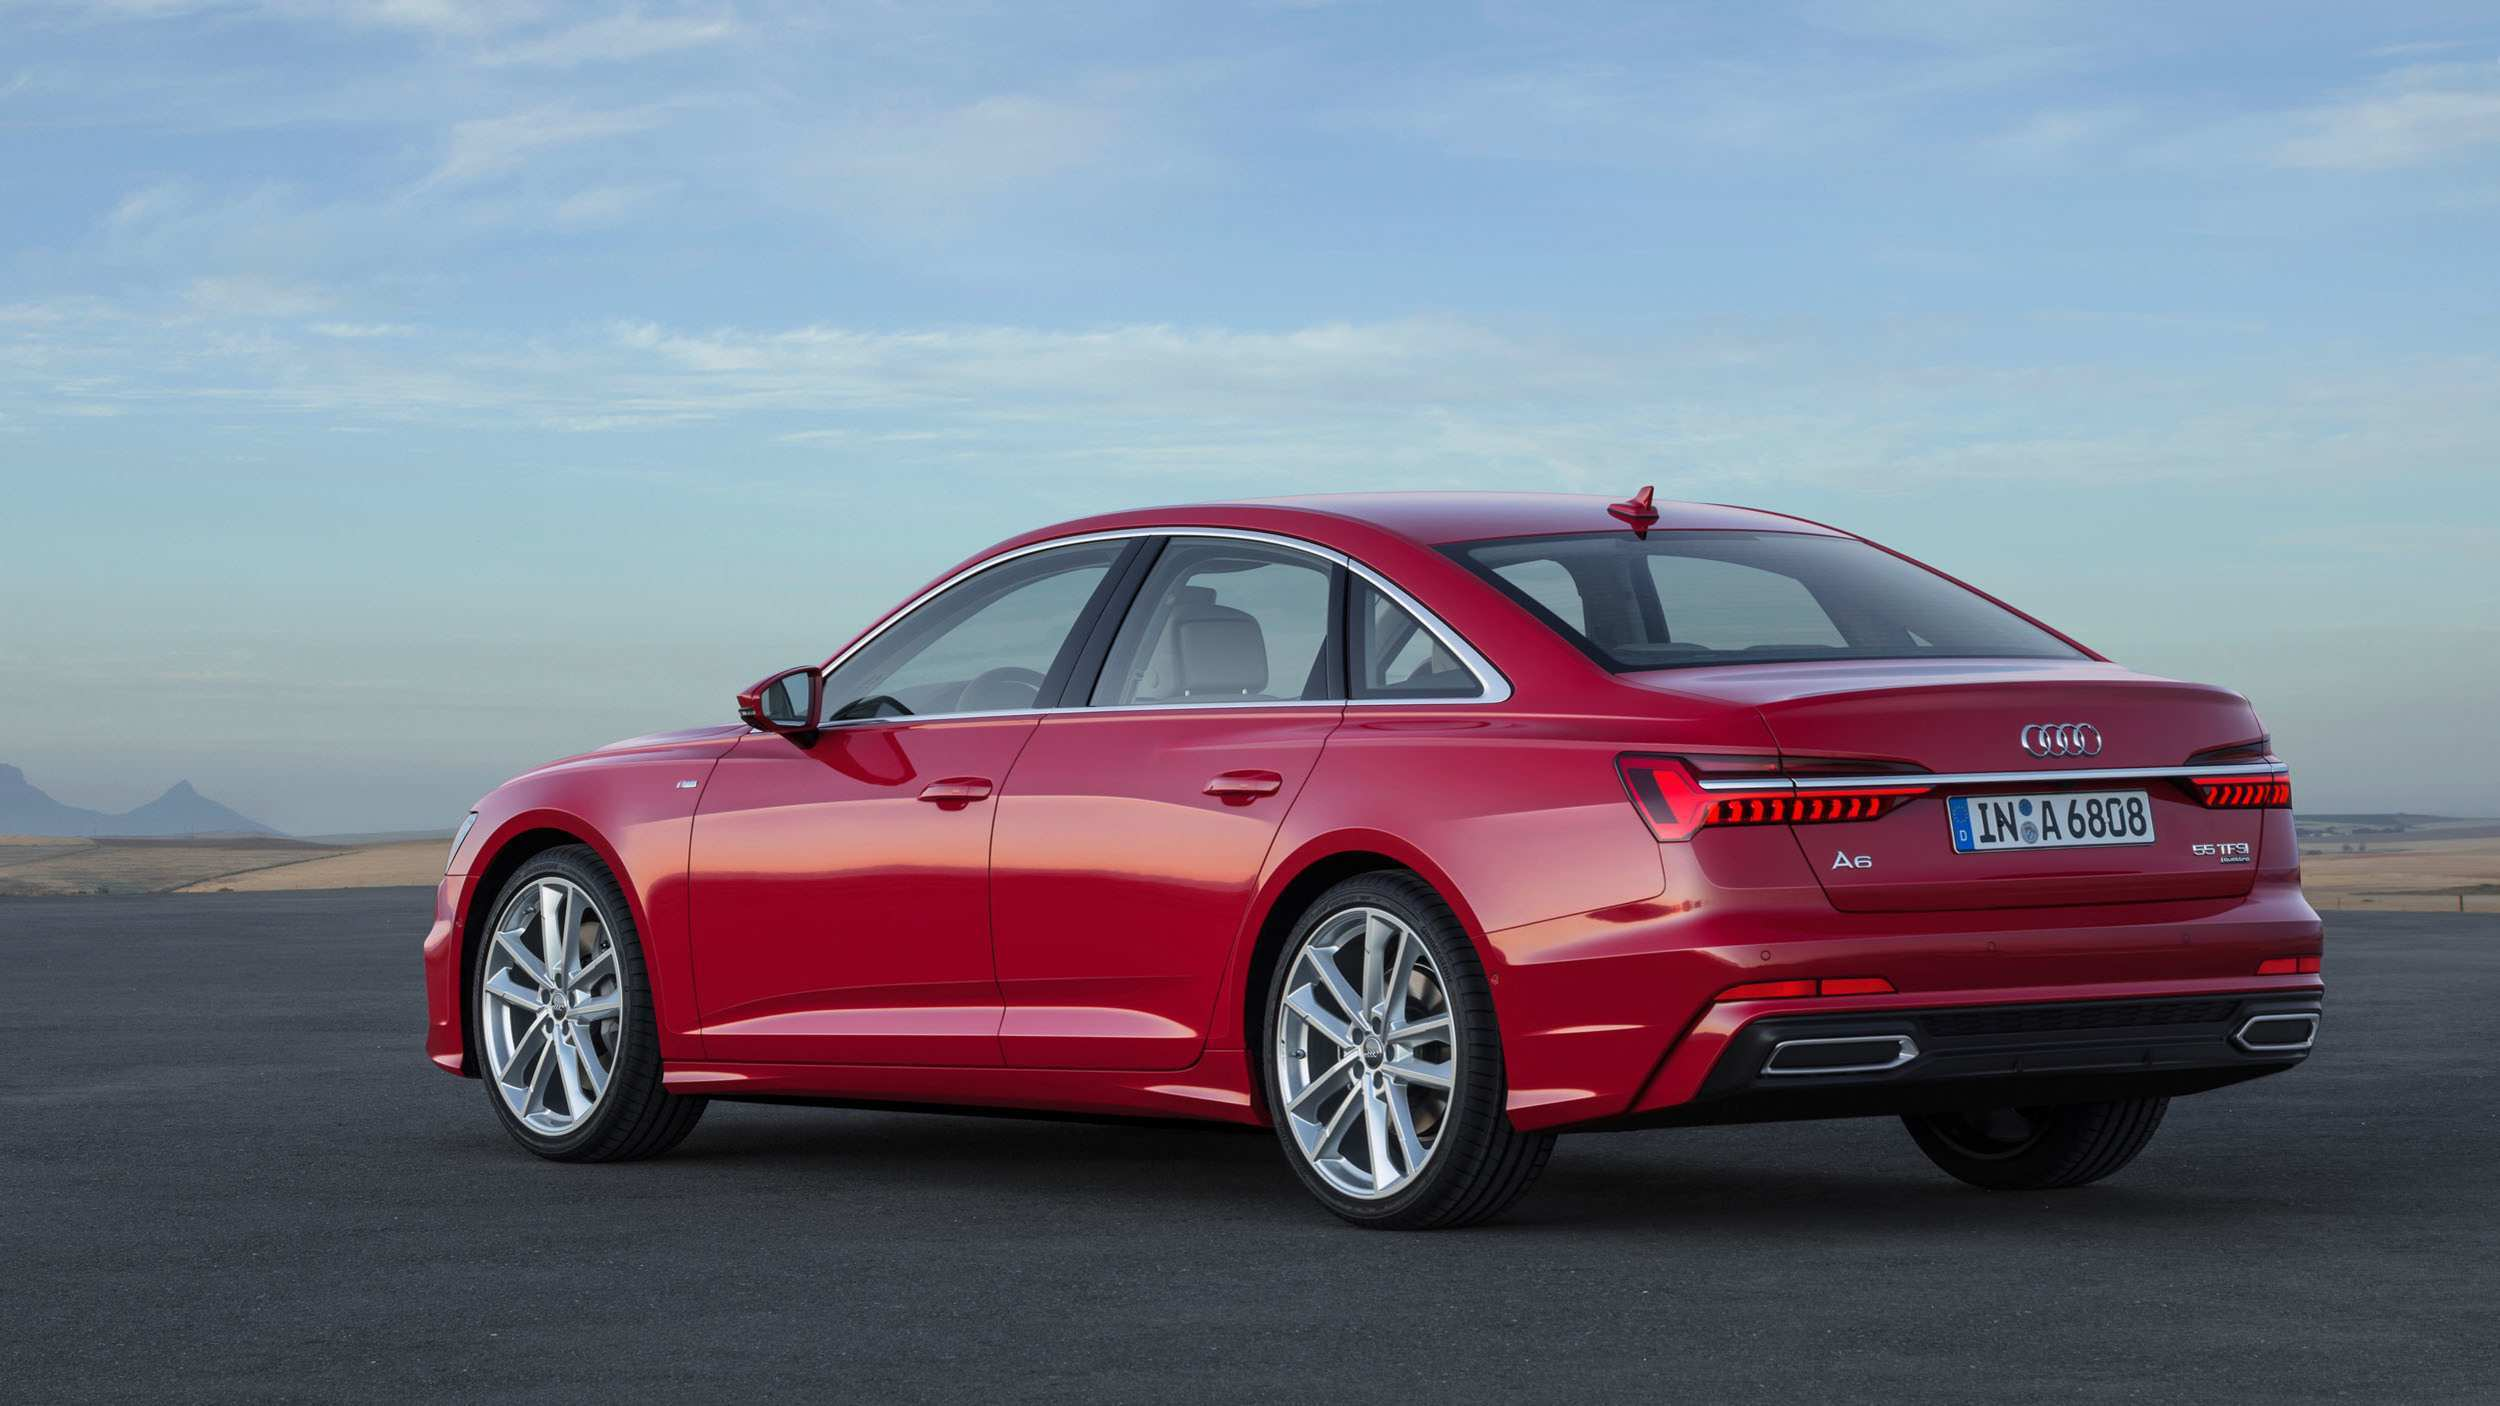 58 Concept of 2019 Audi Price Release Date by 2019 Audi Price